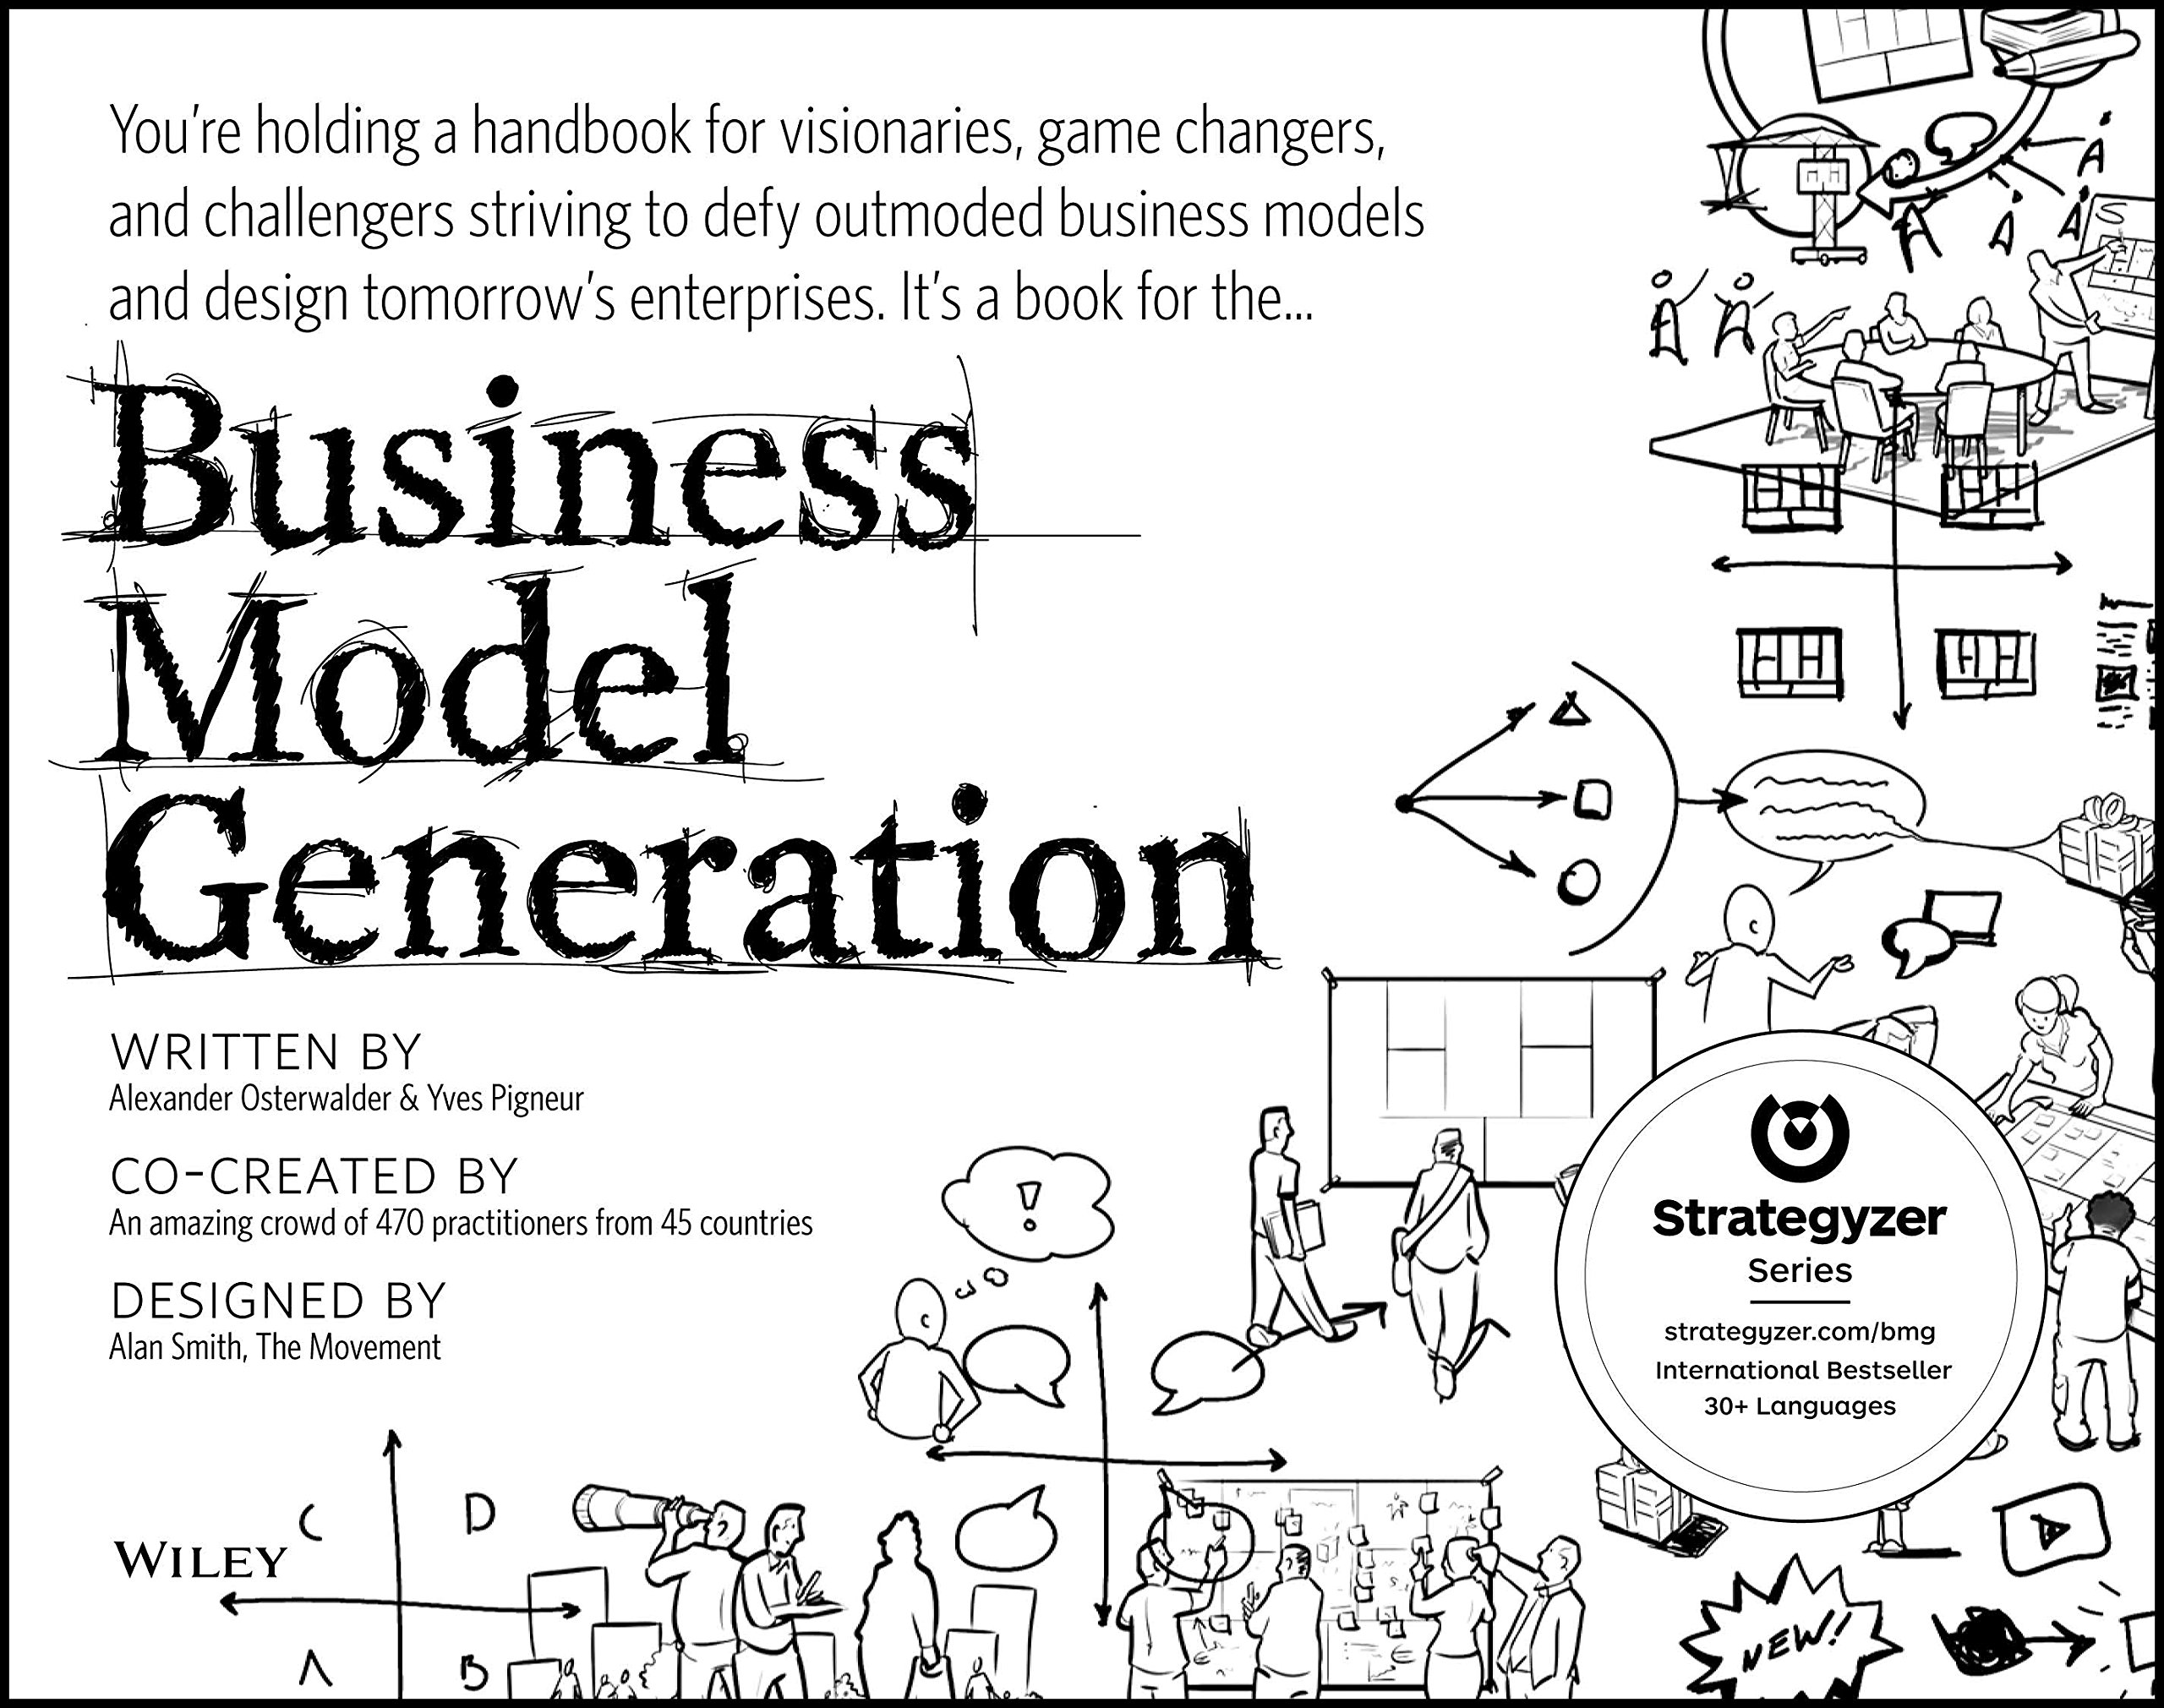 Business Model Generation.